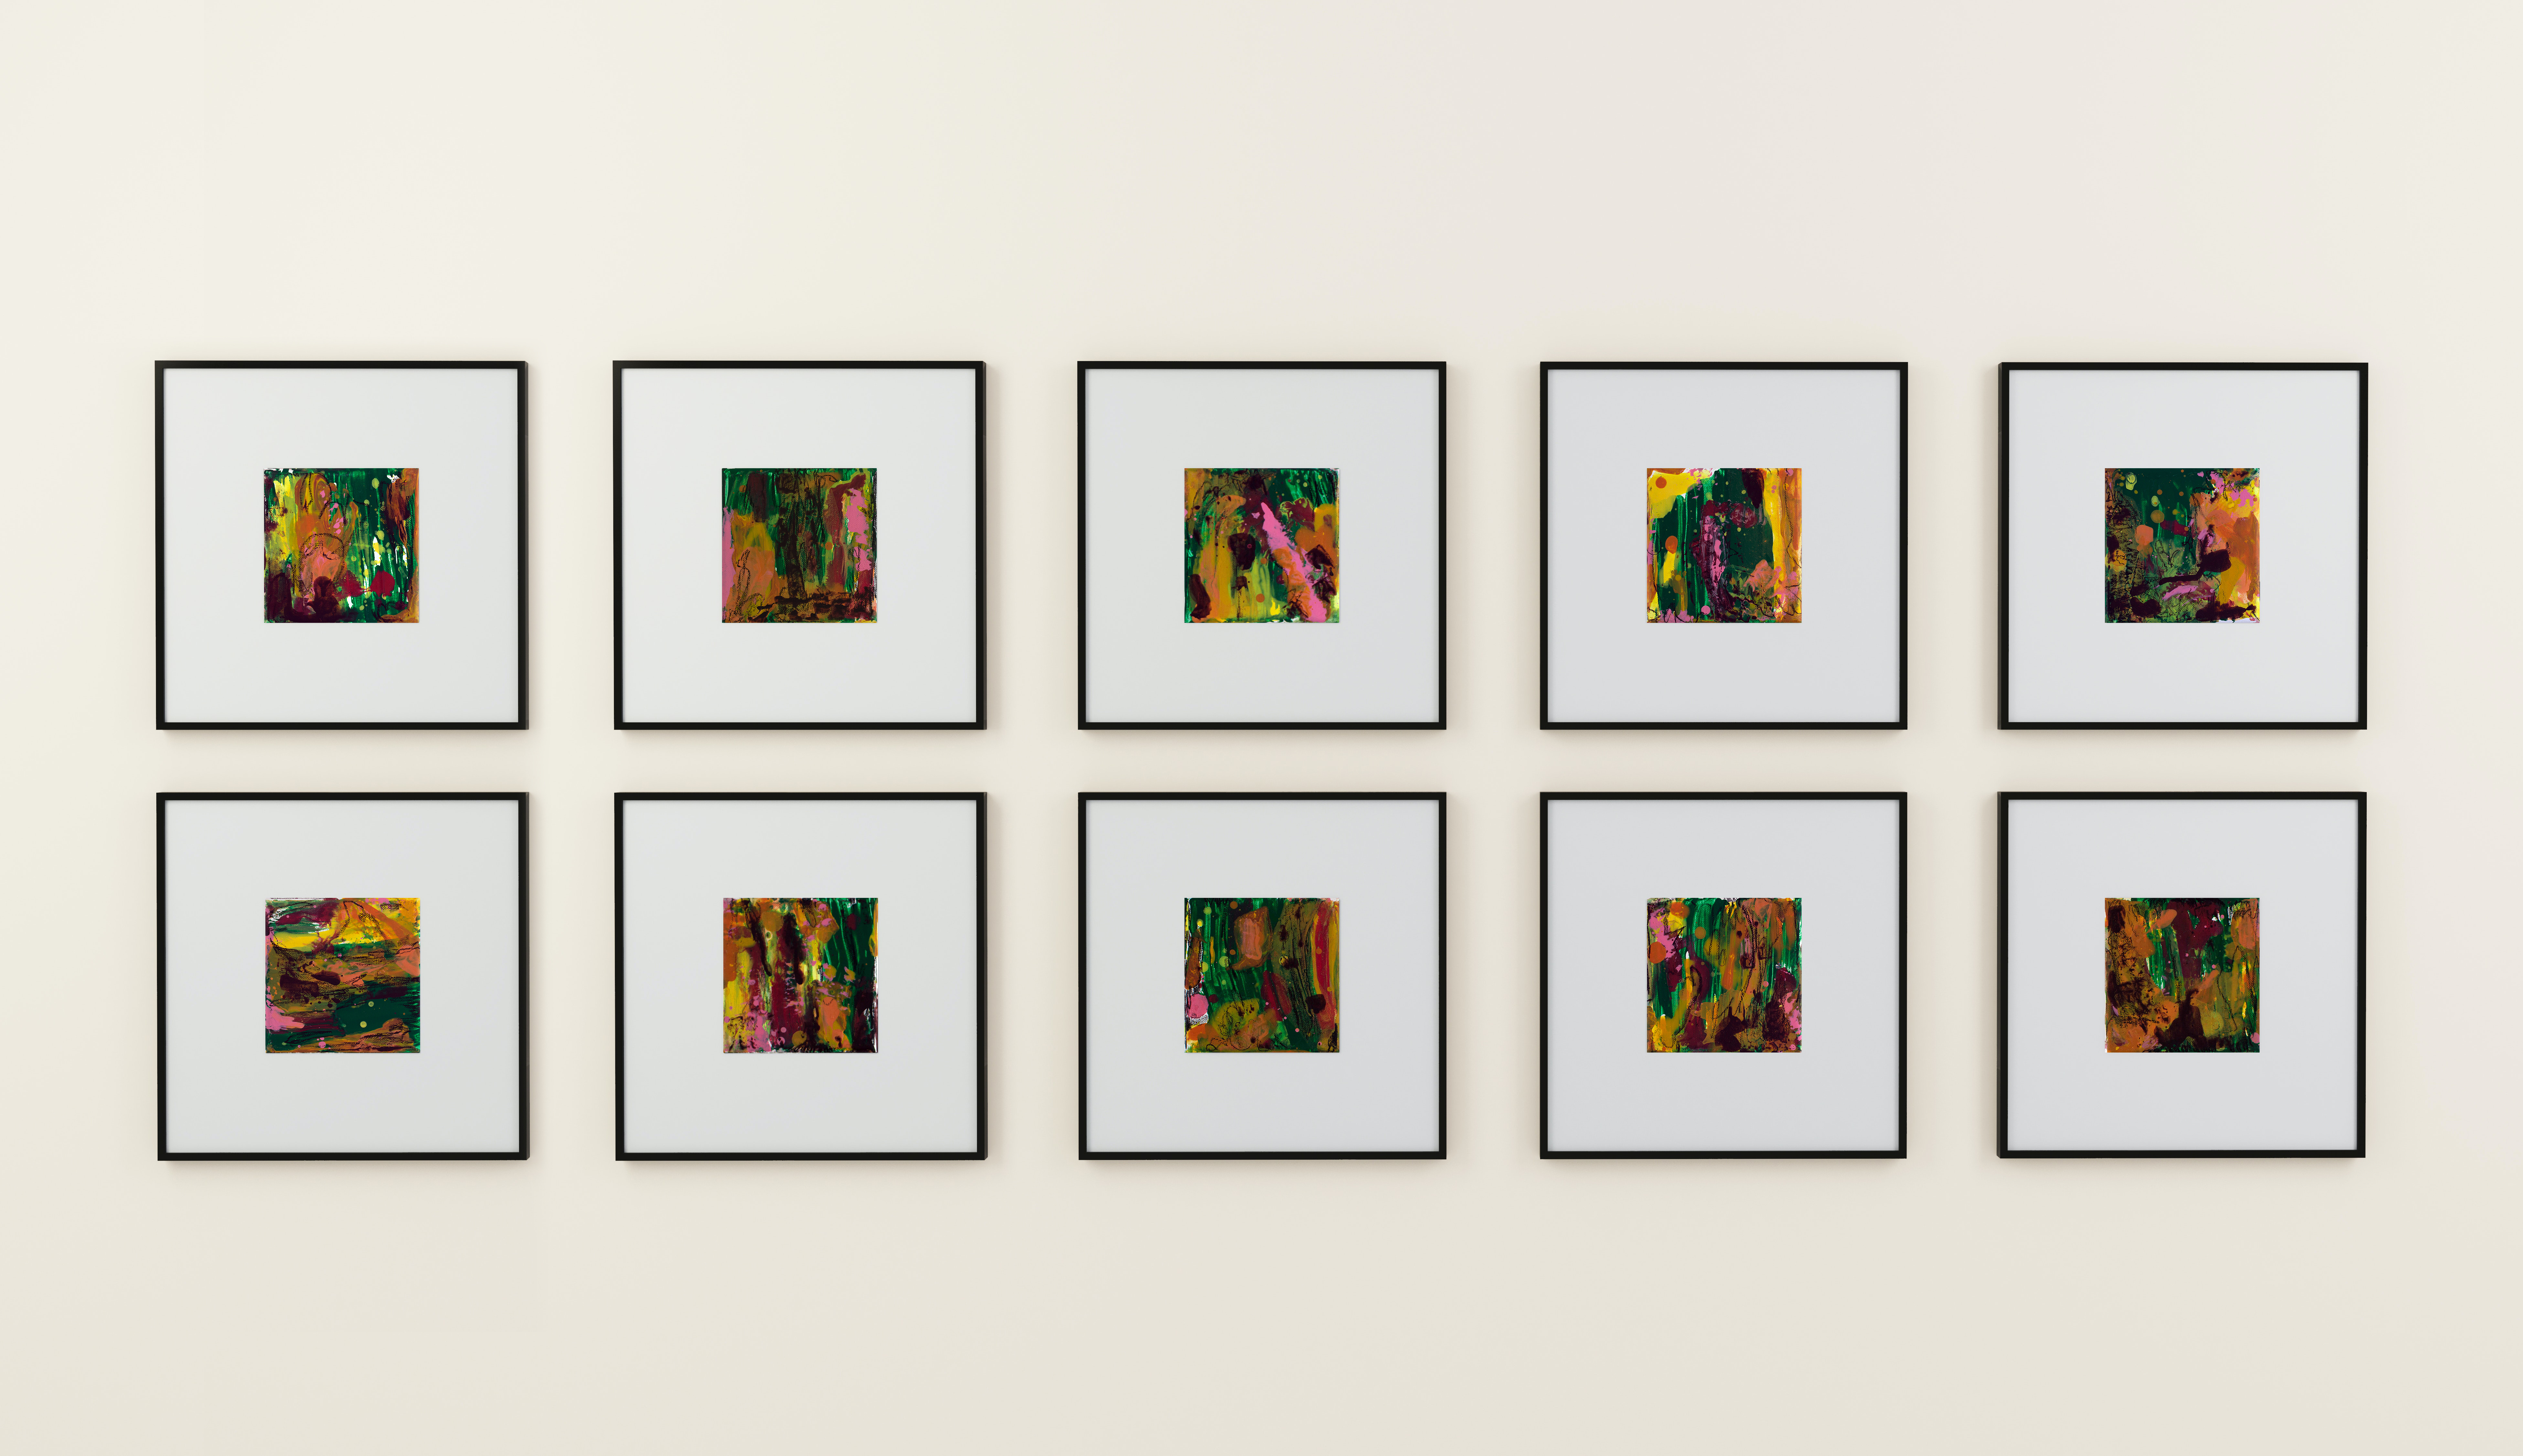 Hiking. 10 Canvases, each is 10 x 10 cm as one connected group. Arrange them like a puzzle.